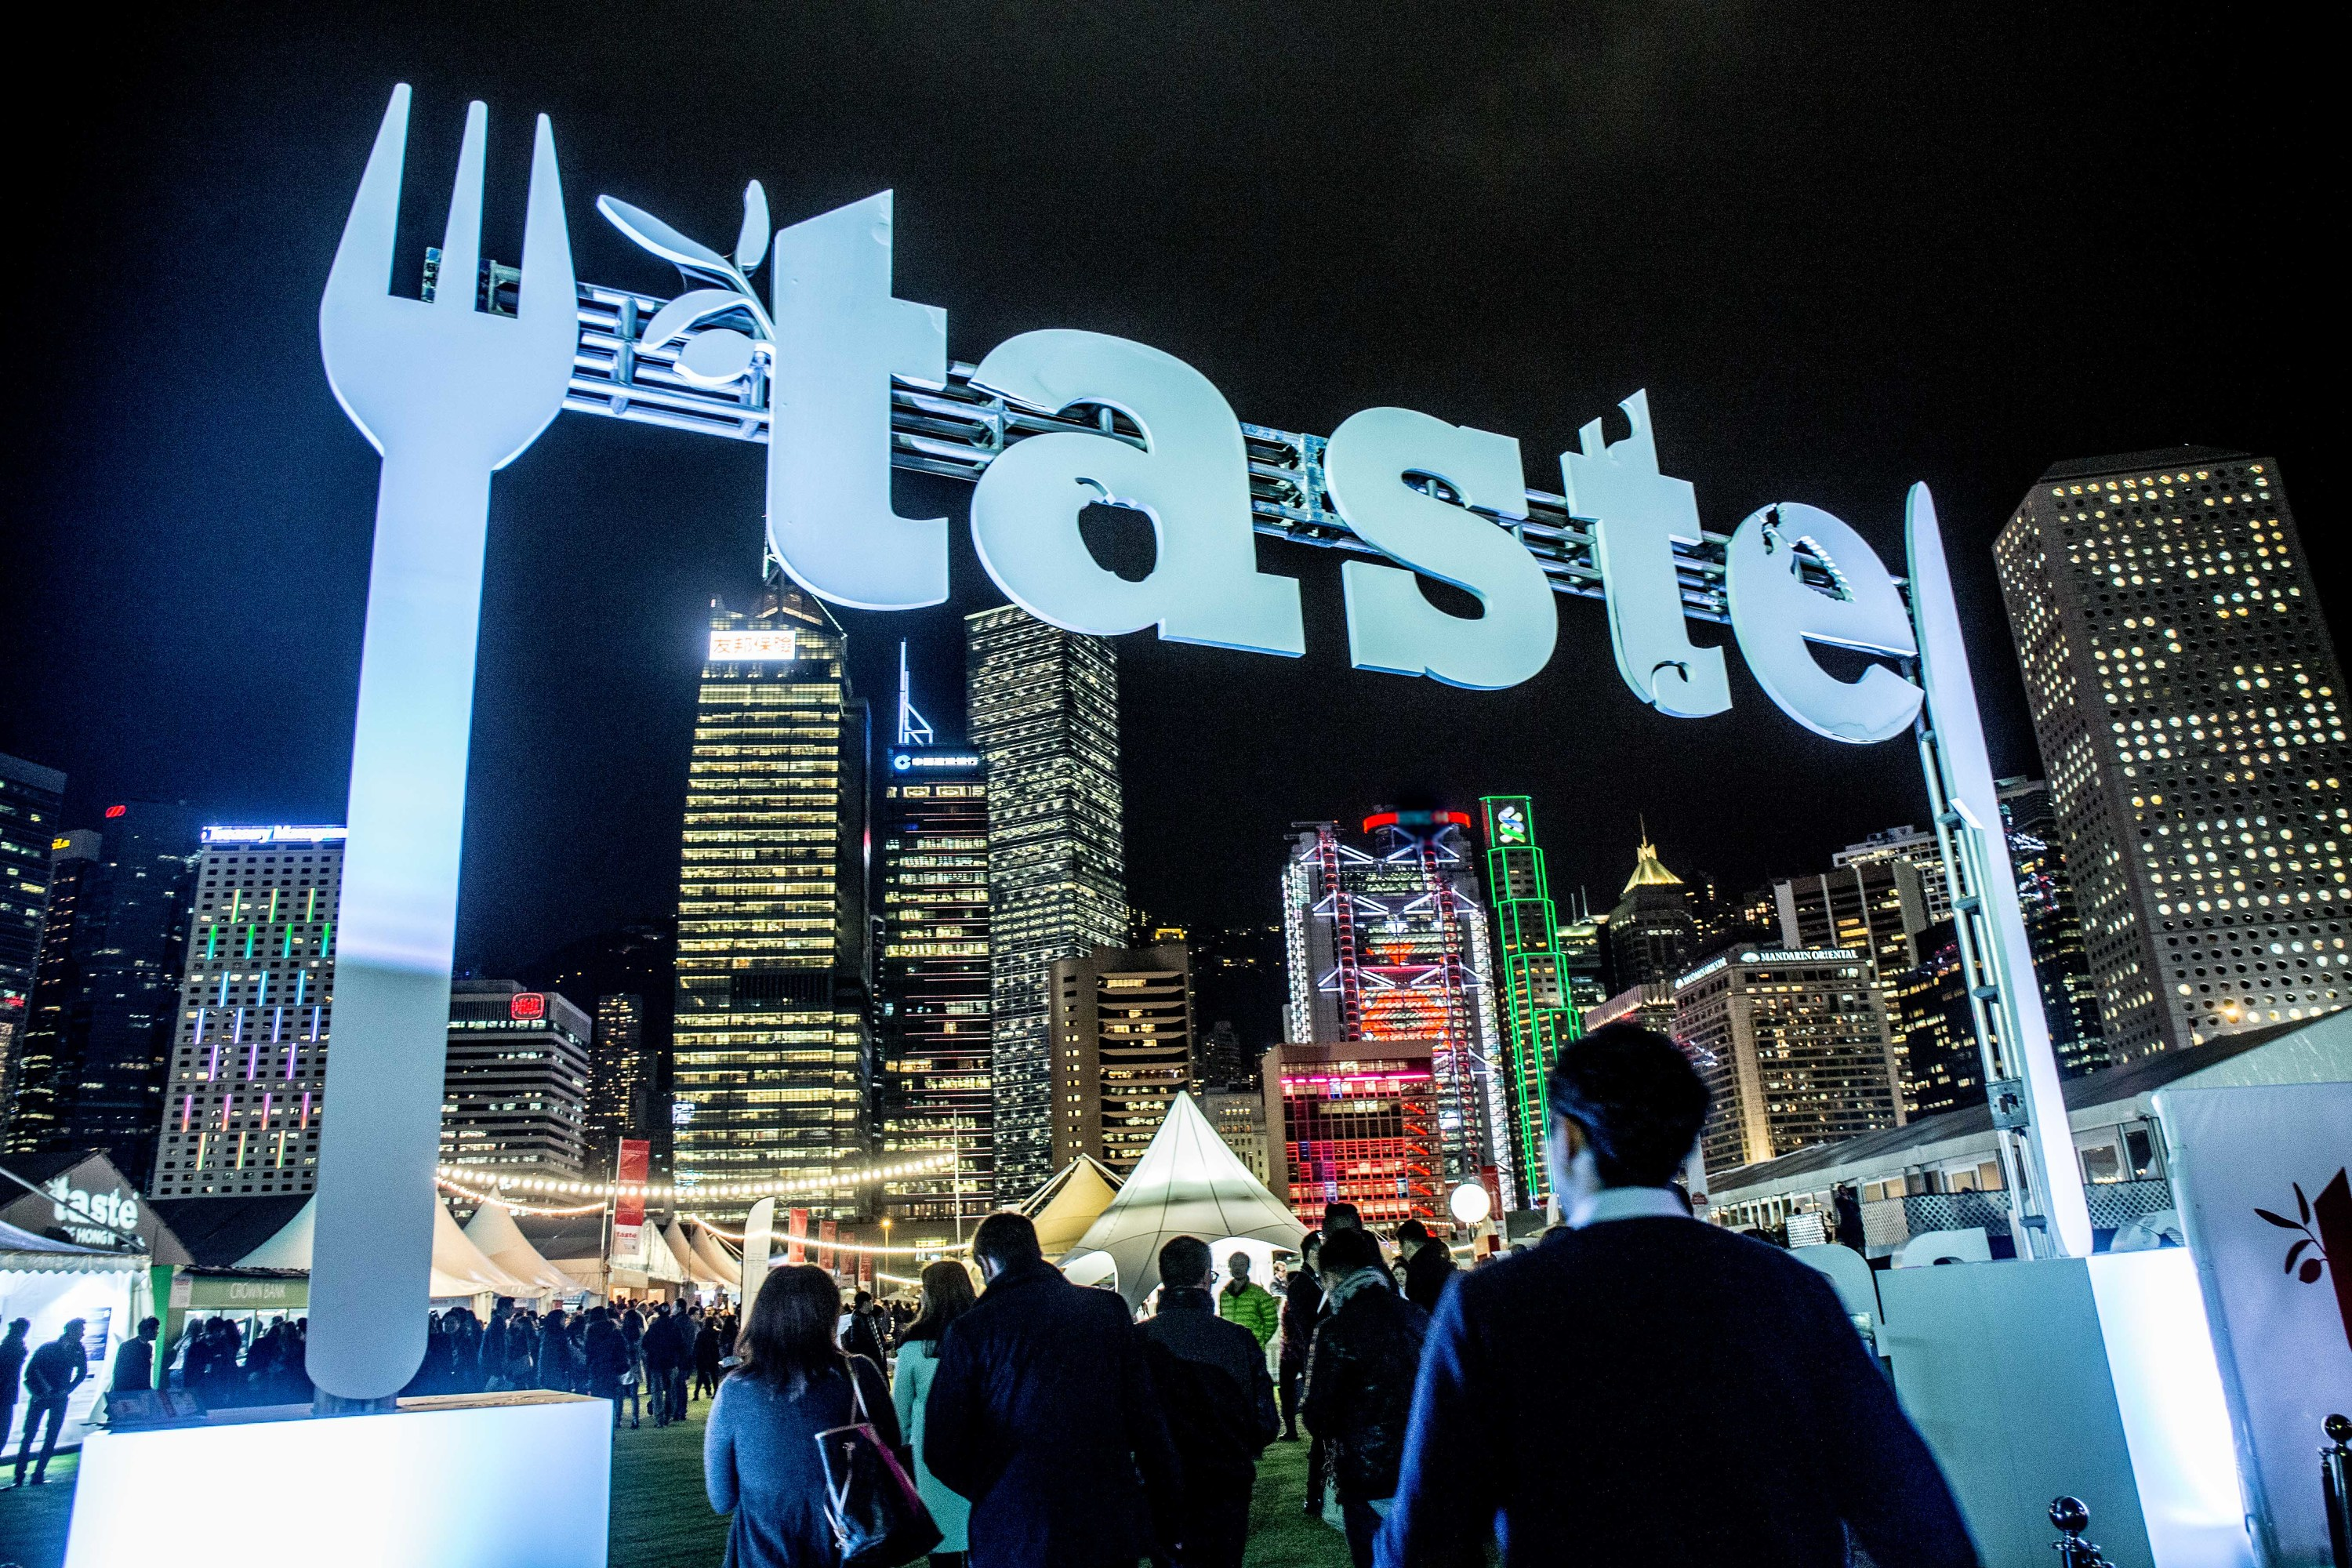 Taste of Hong Kong 2018